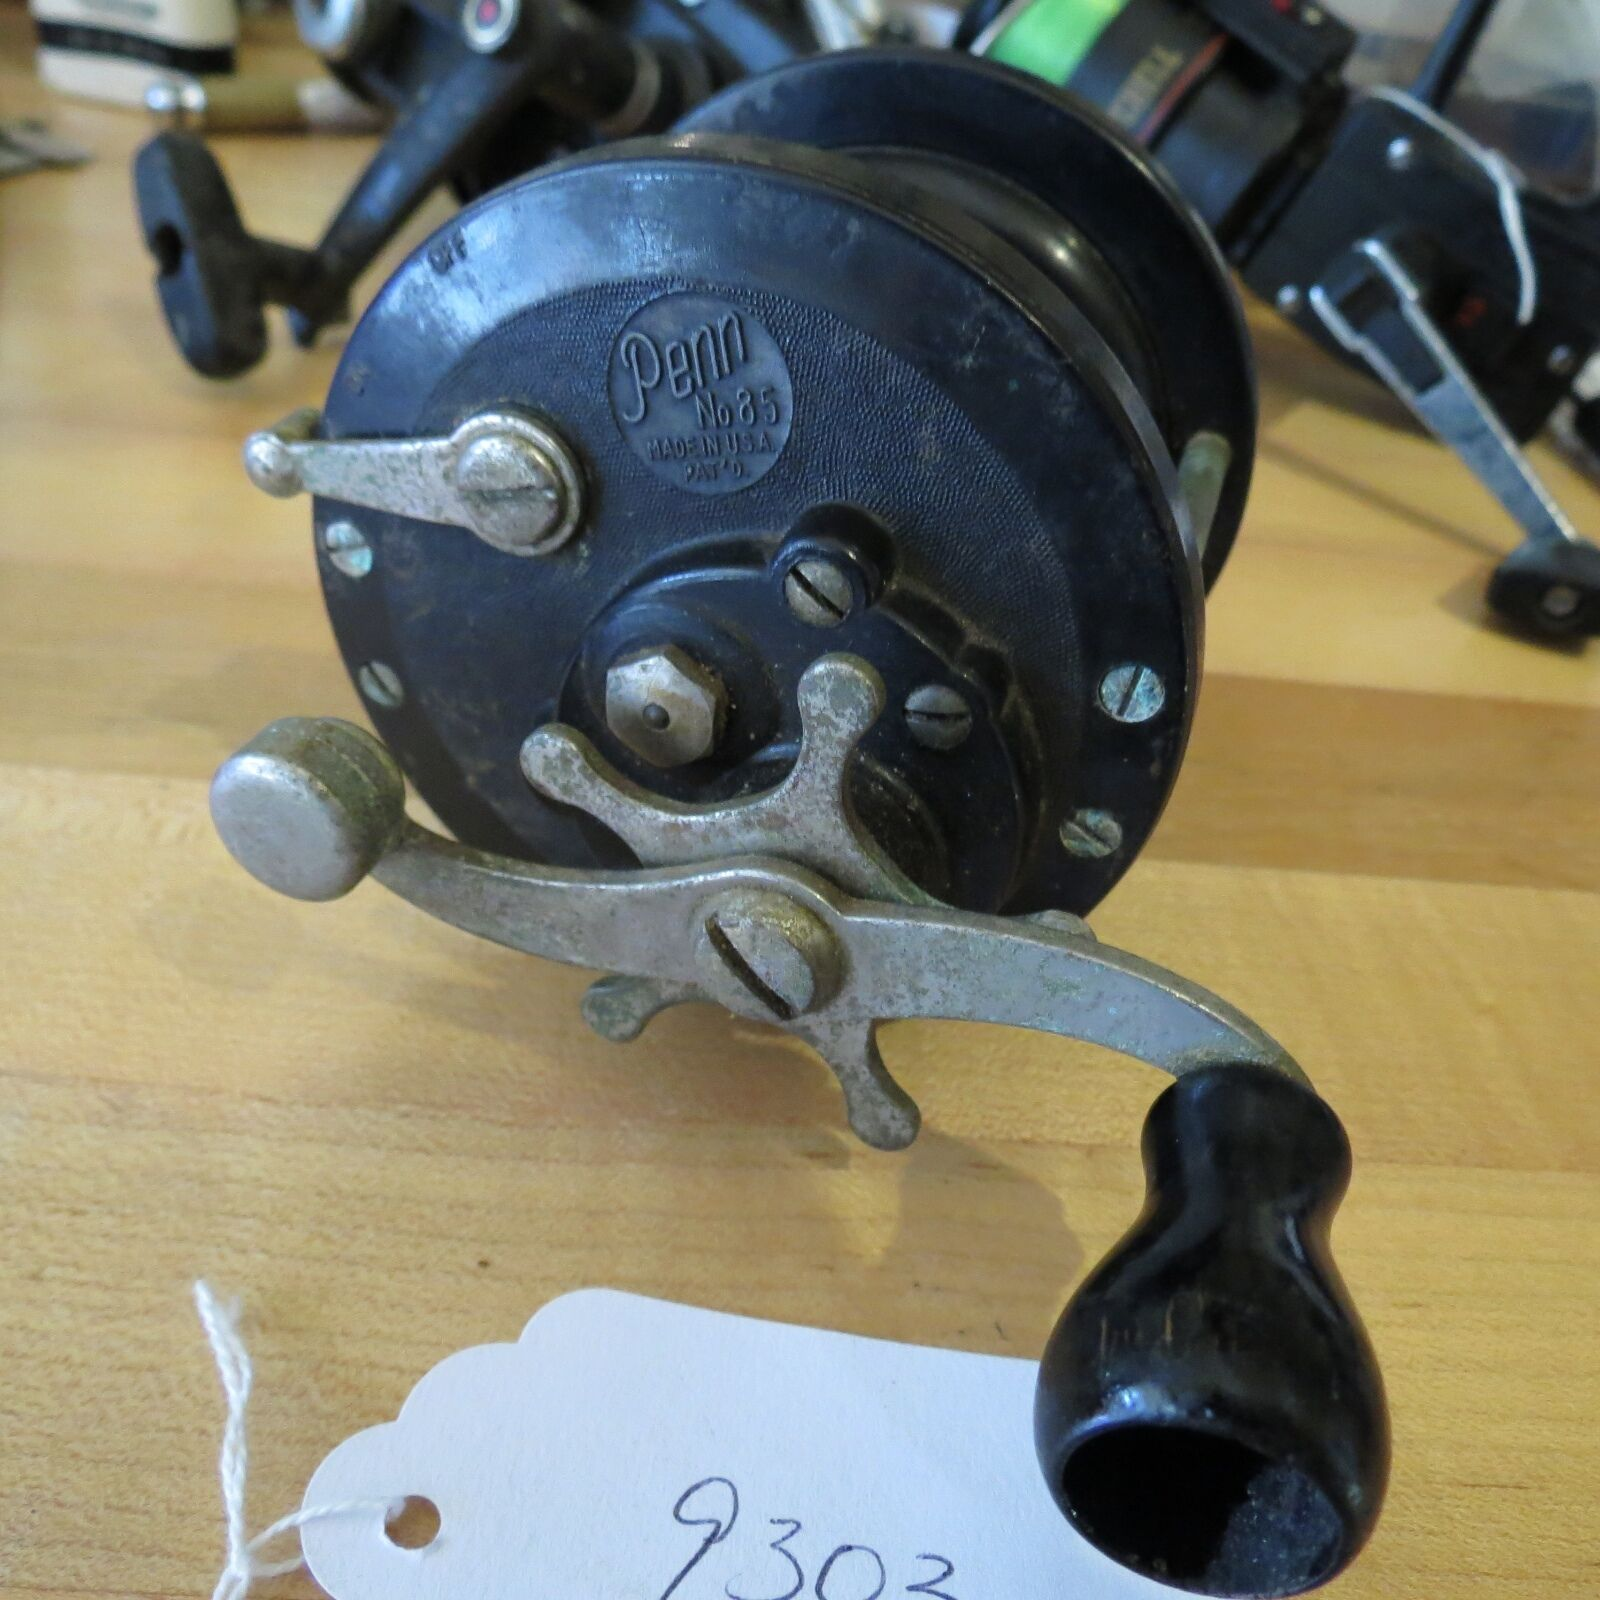 Vintage Penn 85 fishing pat. D fishing 85 reel with vintage tension knob attachment ( 9303) 01ed49